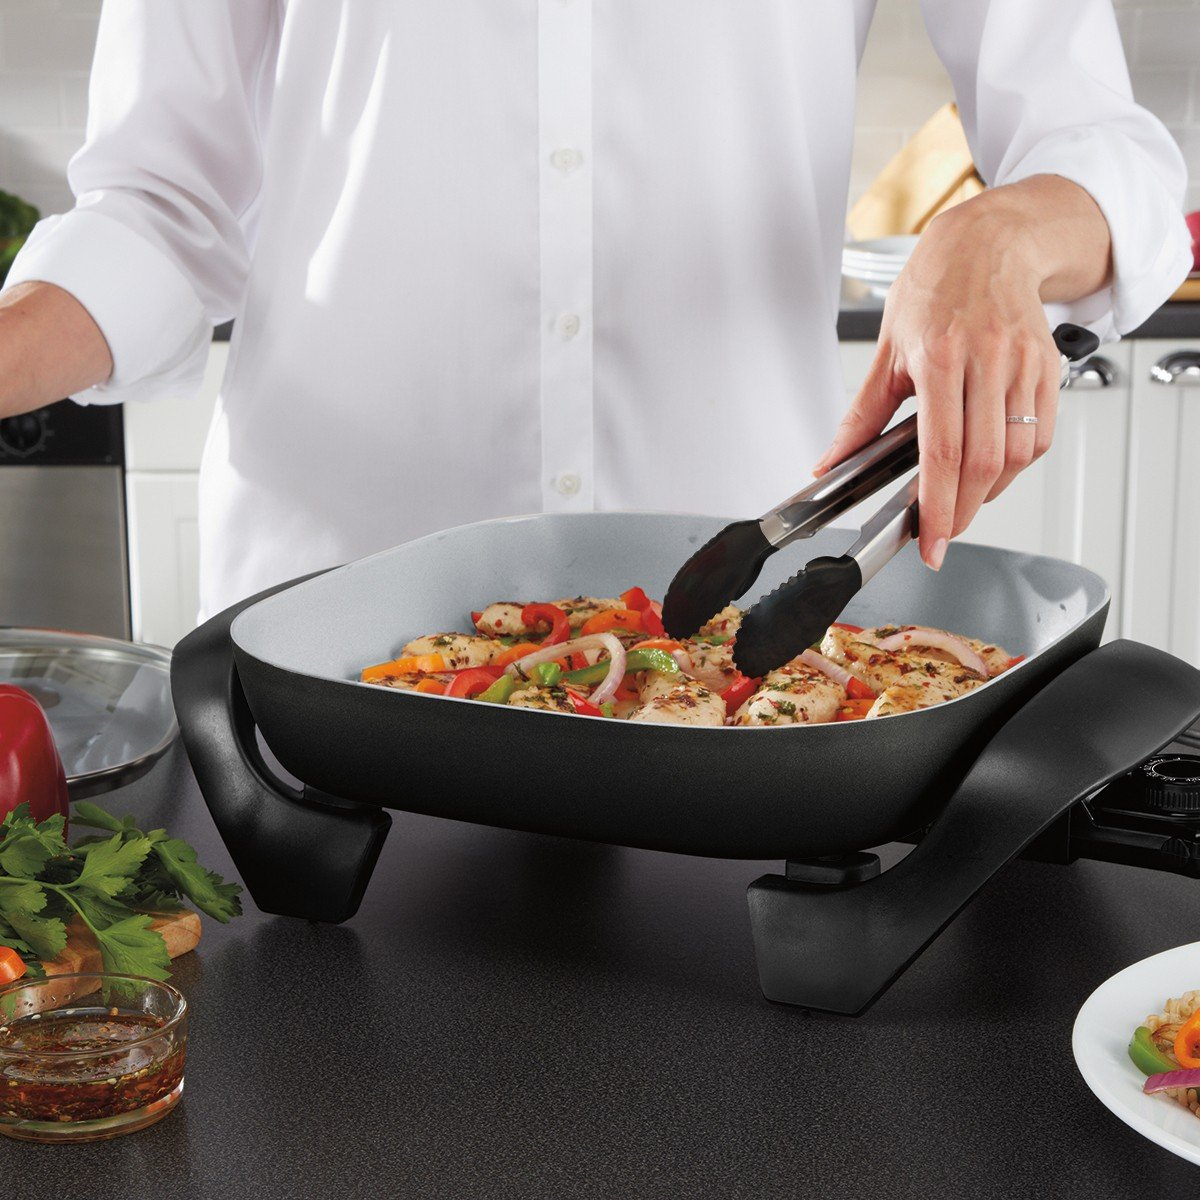 Oster Titanium Infused DuraCeramic Electric Skillet, 12 Inch, Square, Black/Silver (CKSTSKFM12-TECO) by Oster (Image #5)